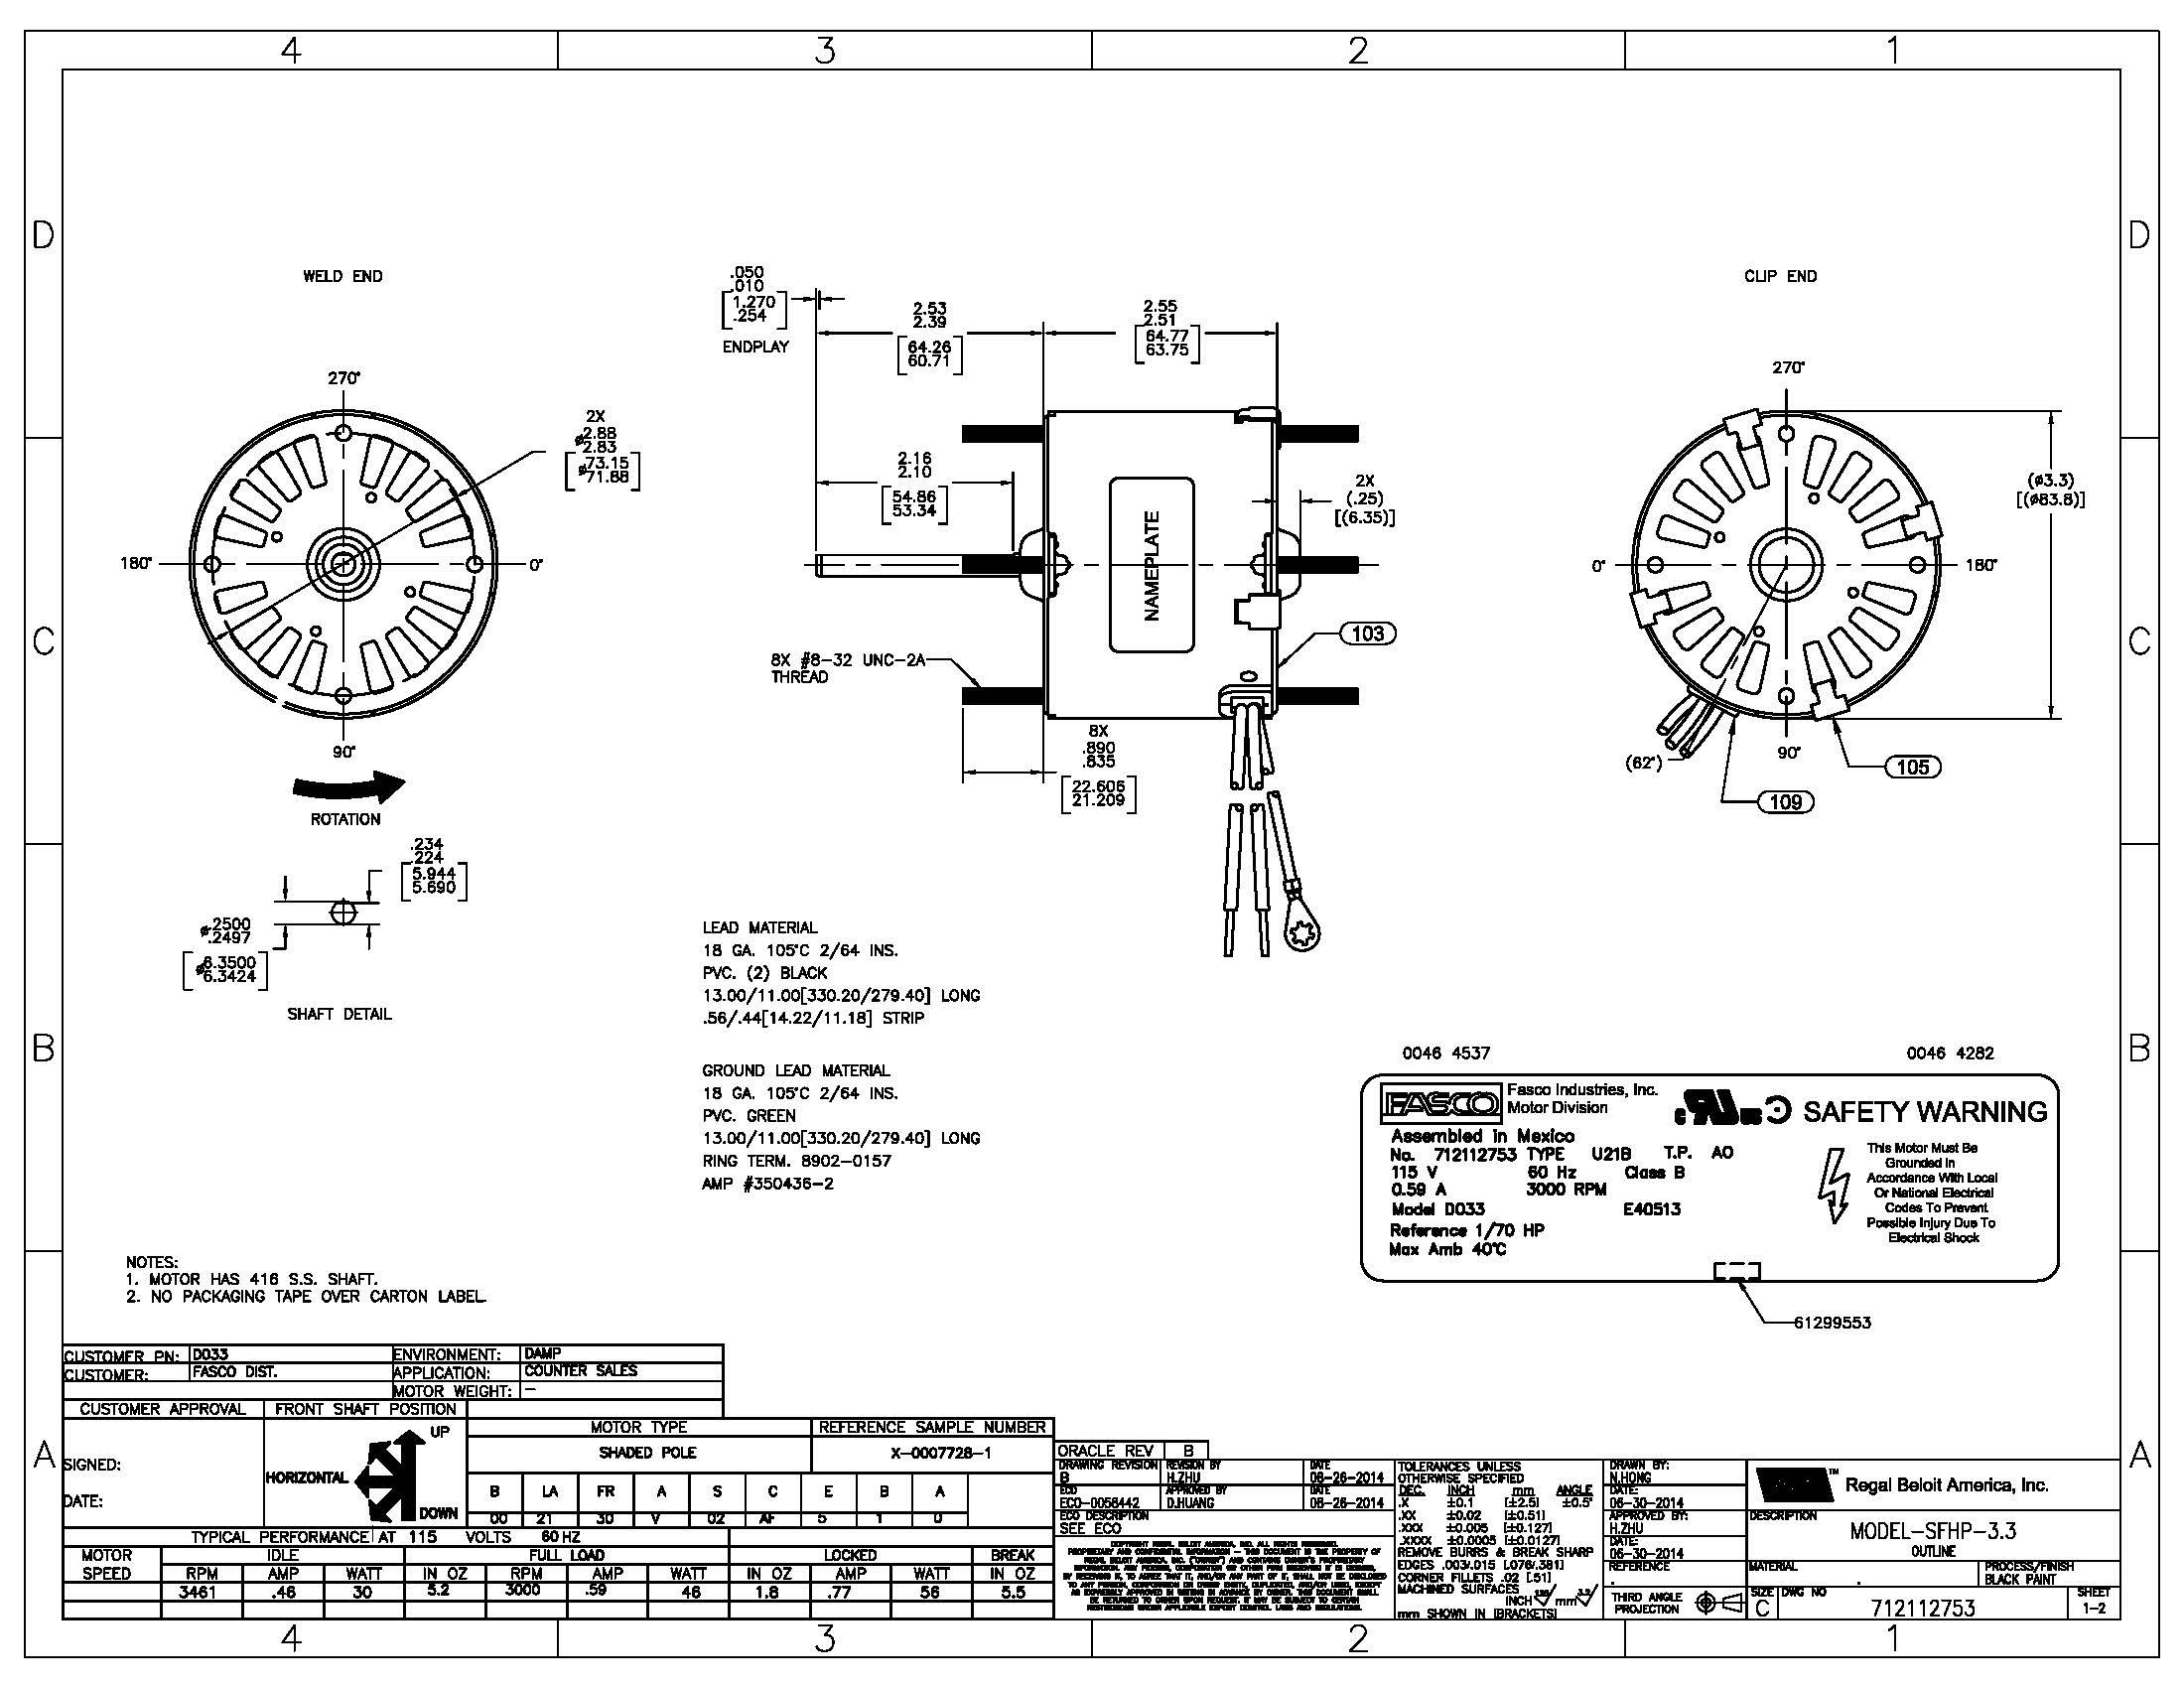 A O Smith Wiring Diagram - WIRE Center • A O Smith Gk Wiring Diagram on b979 ao smith motor diagram, centurion pool pump diagram, ao smith motor parts diagram, pool pump motor diagram, ao smith pool pump diagram, ao smith fan motor wiring diagram, ao smith electric motor wiring diagram, ao smith pump motor wiring diagram, motors 4 blowers wire diagram,